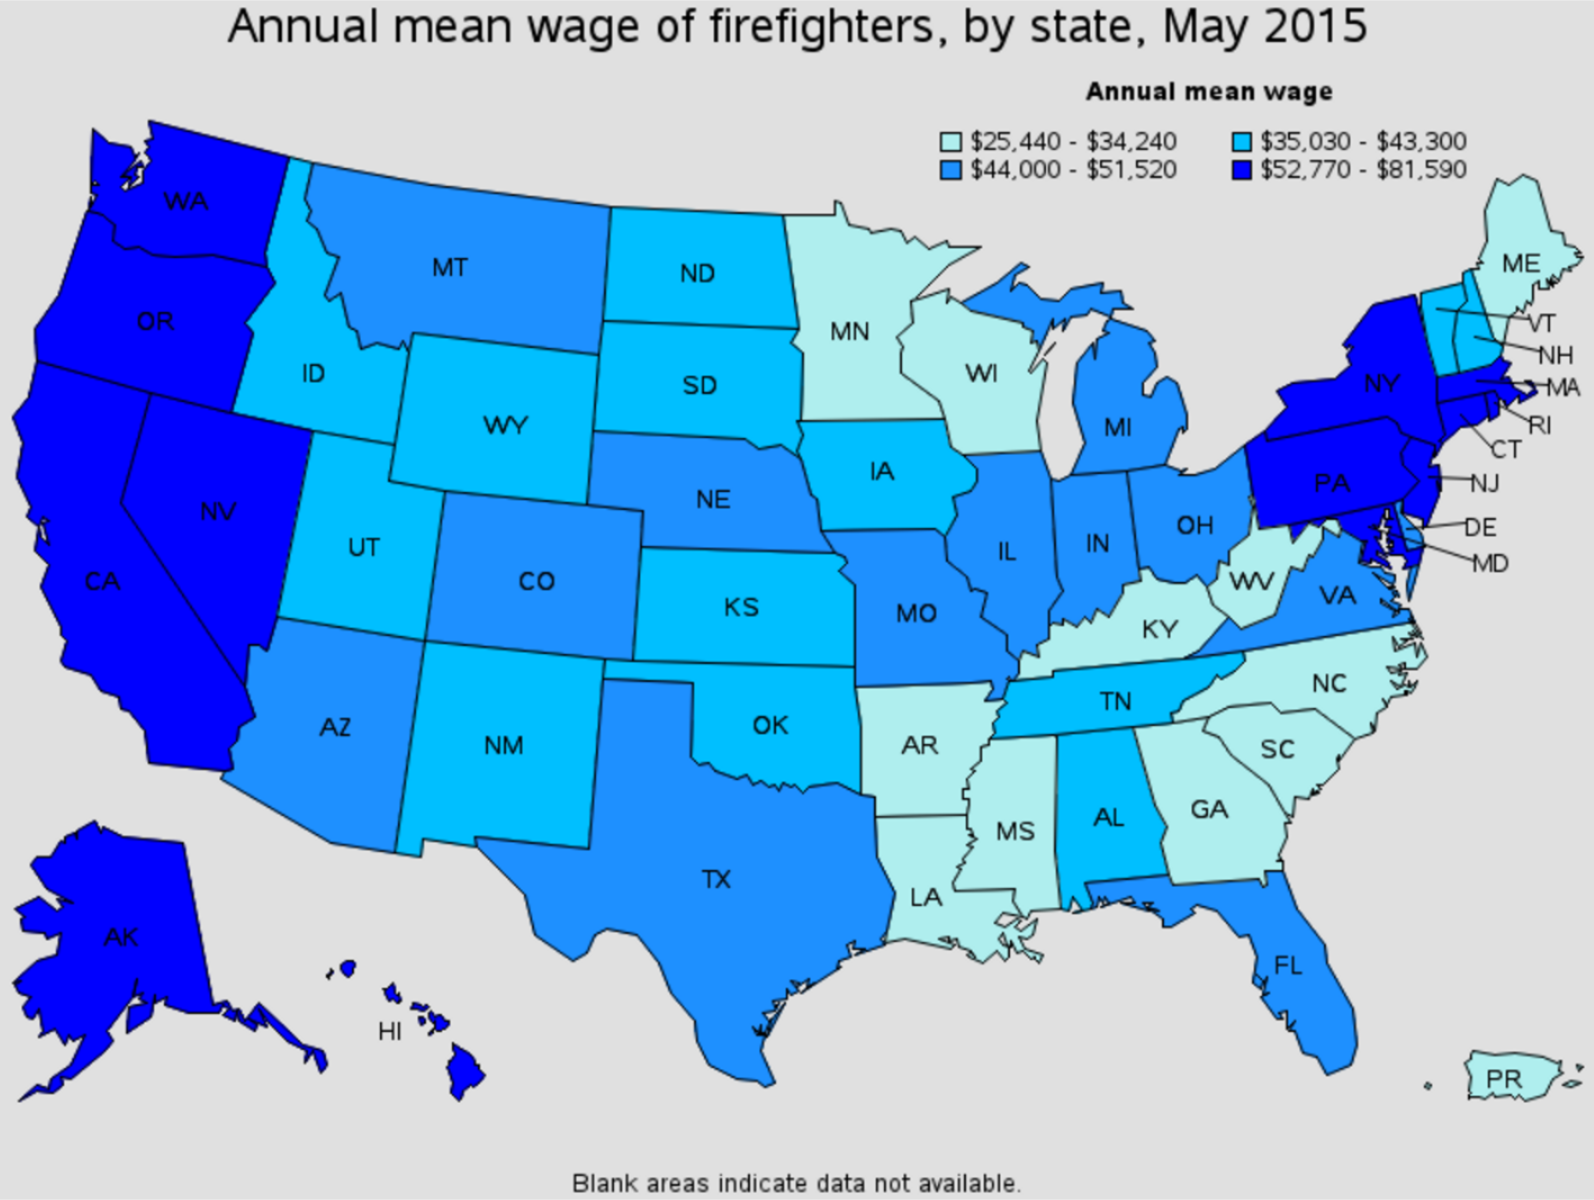 firefighter average salary by state Long Beach California